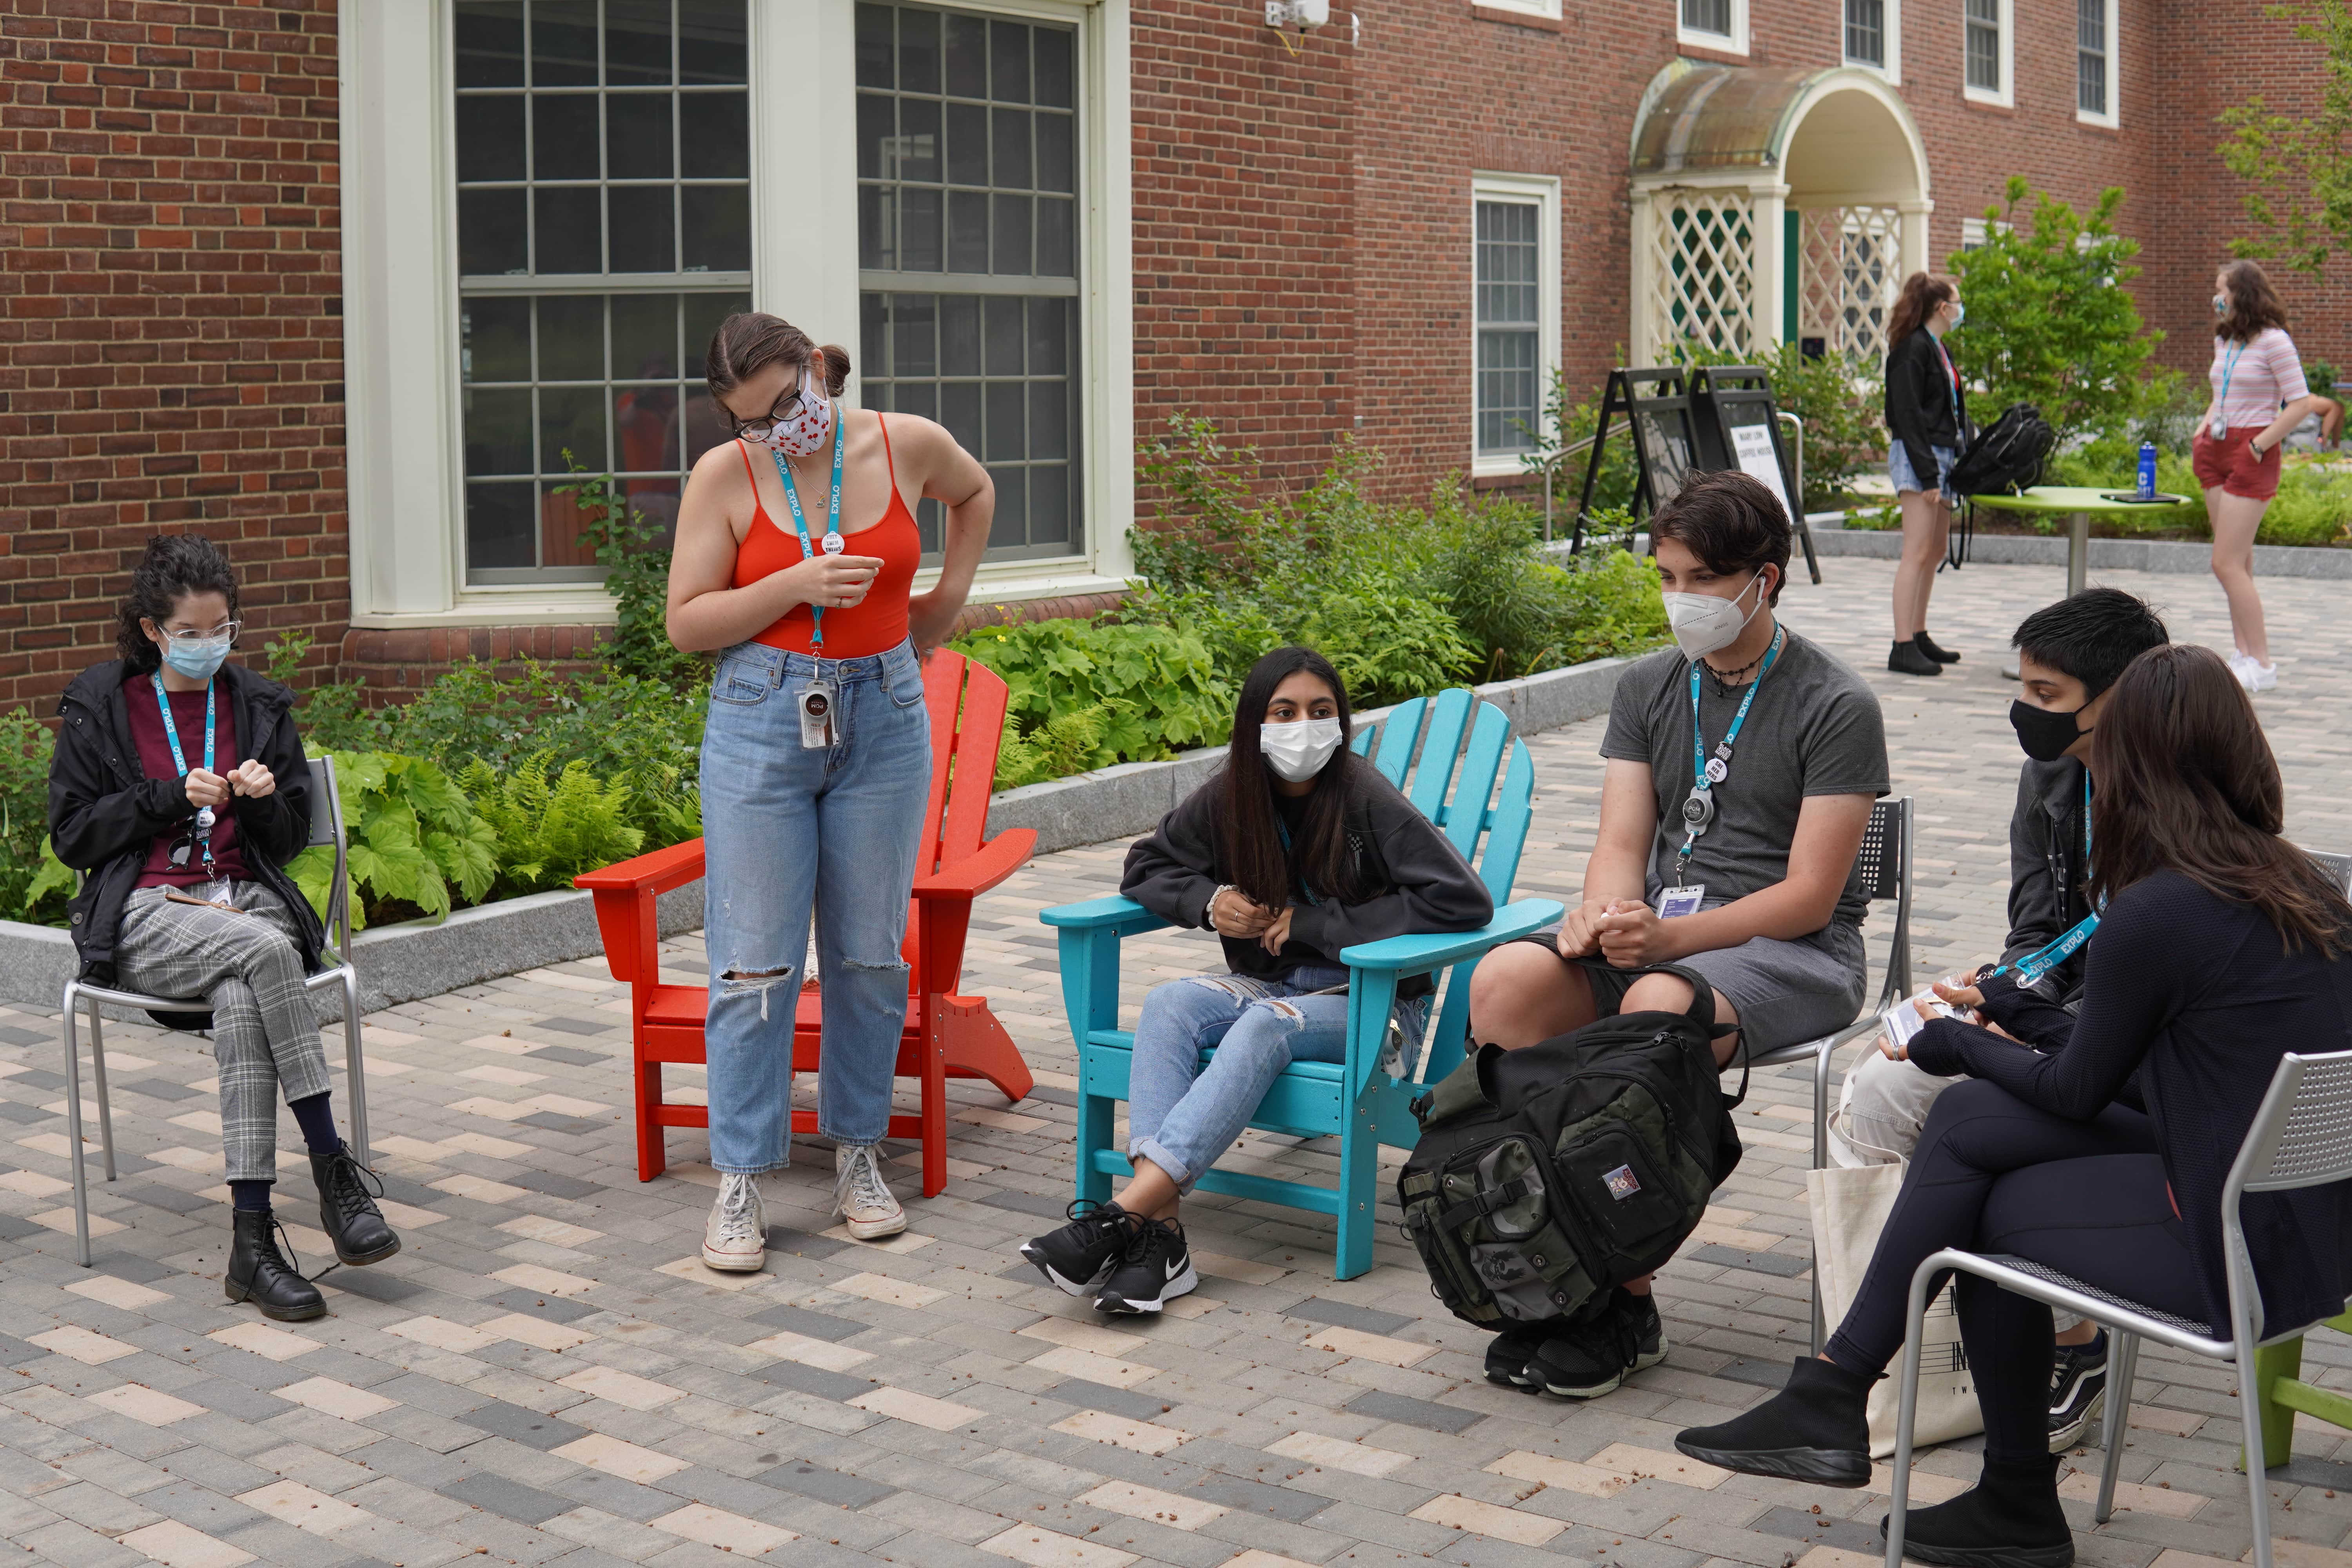 Students sit in a row of chairs along a bricked pathway, discussing their expectations for the concentration they're all enrolled in.